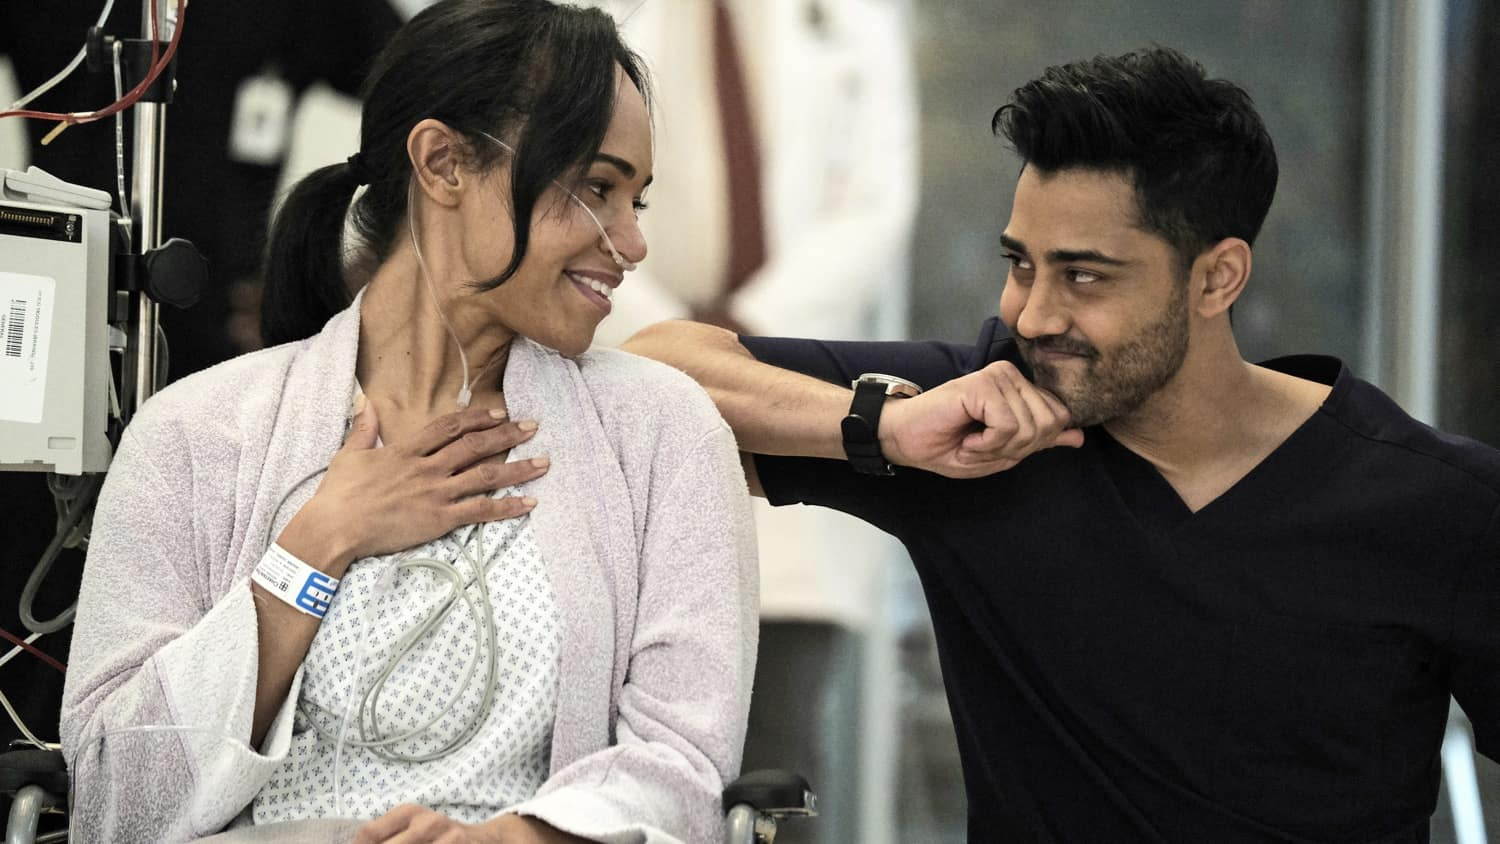 """THE RESIDENT Season 4 Episode 7 : L-R: Guest star Cara Ricketts and Manish Dayal in the """"Hero Moments"""" episode of THE RESIDENT airing Tuesday, March 2 (8:00-9:01 PM ET/PT) on FOX. ©2021 Fox Media LLC Cr: Guy D'Alema/FOX"""